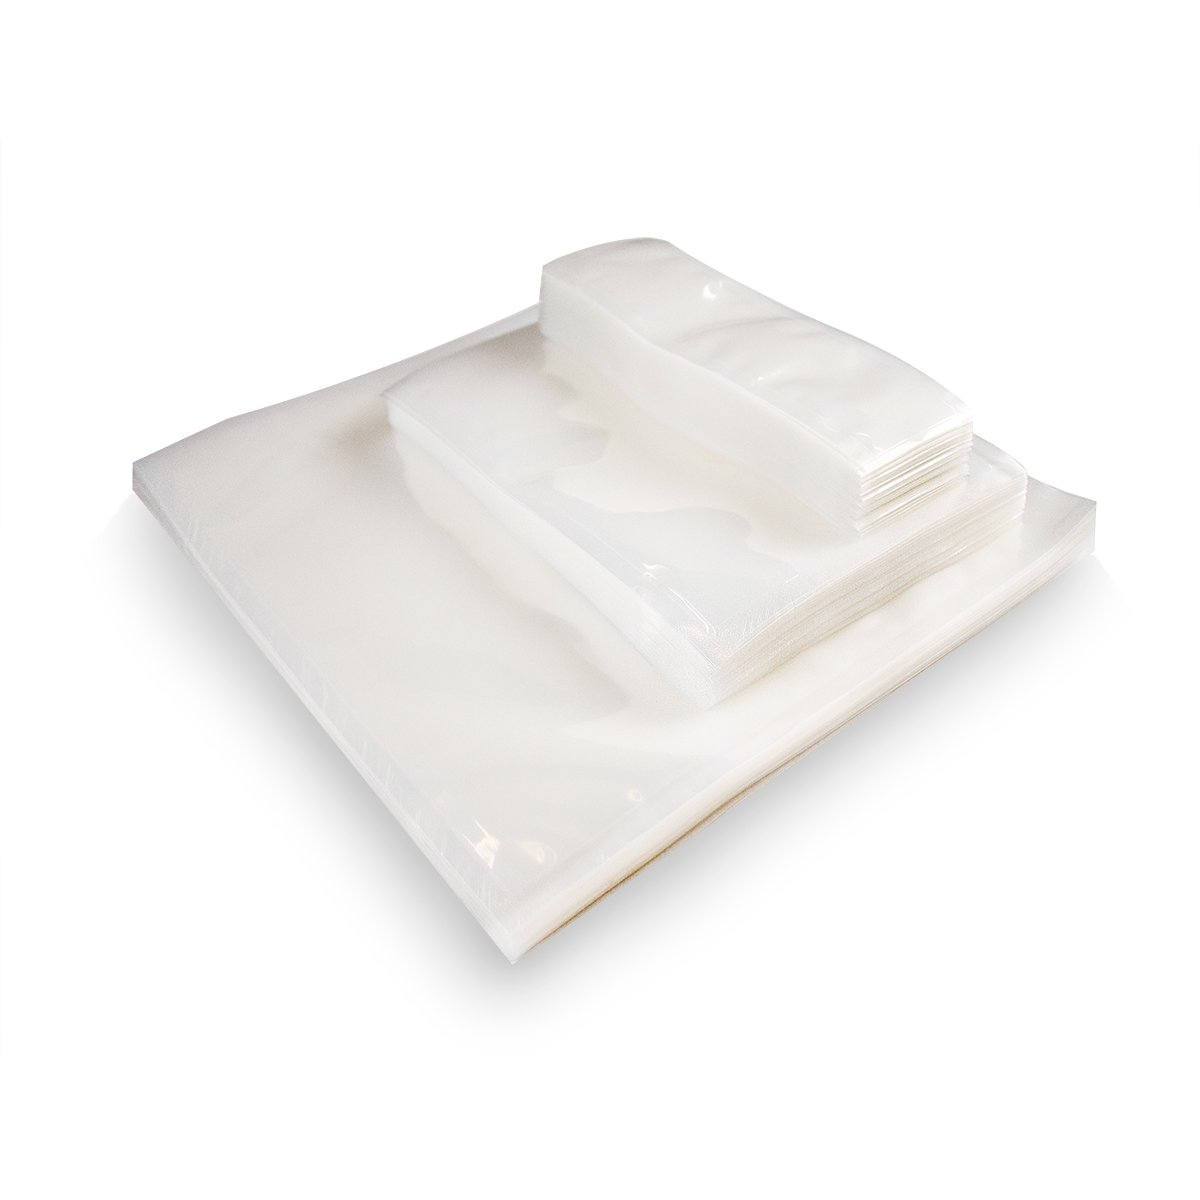 UltraSource Vacuum Chamber Pouches, 8 x 10, 3 mil (Box of 1000)